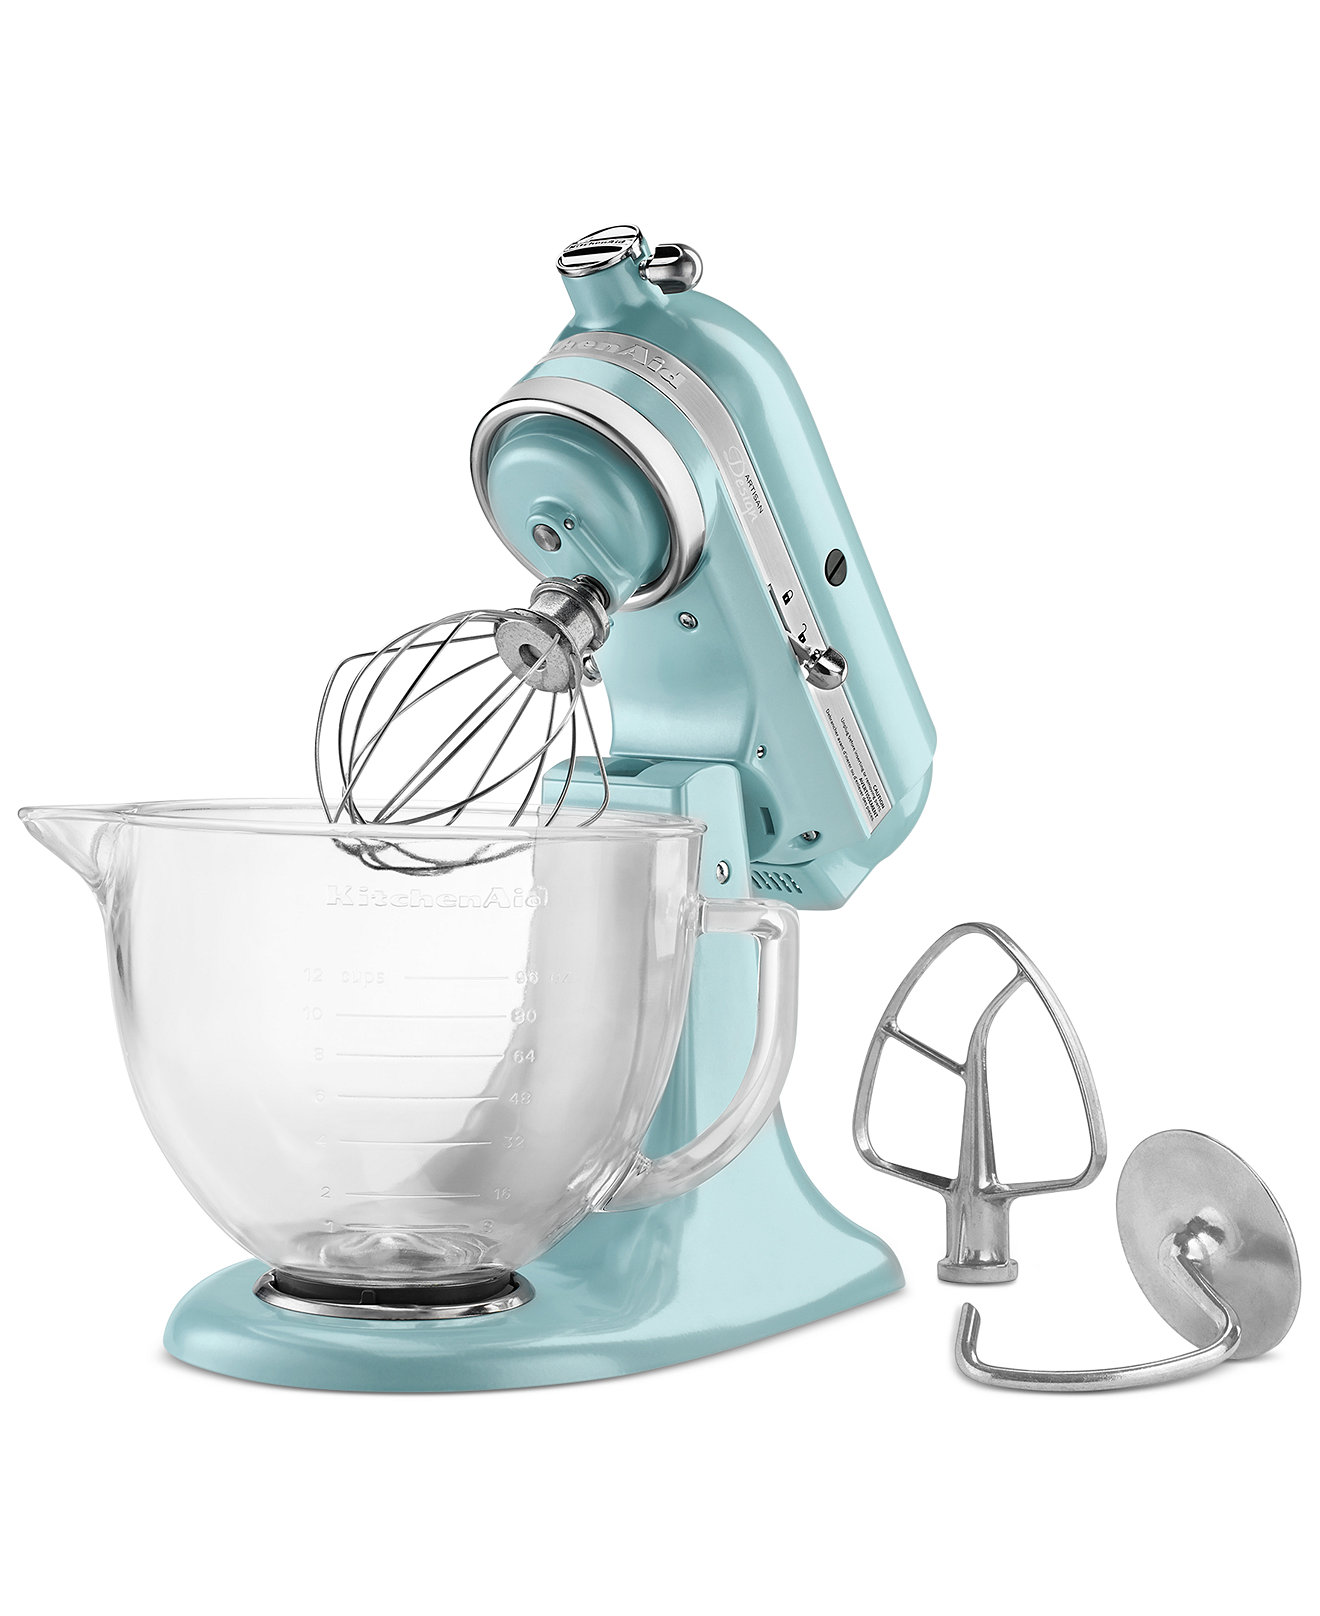 KitchenAid KSM155 5 Qt. Stand Mixer - Electrics - Kitchen - Macy's ...